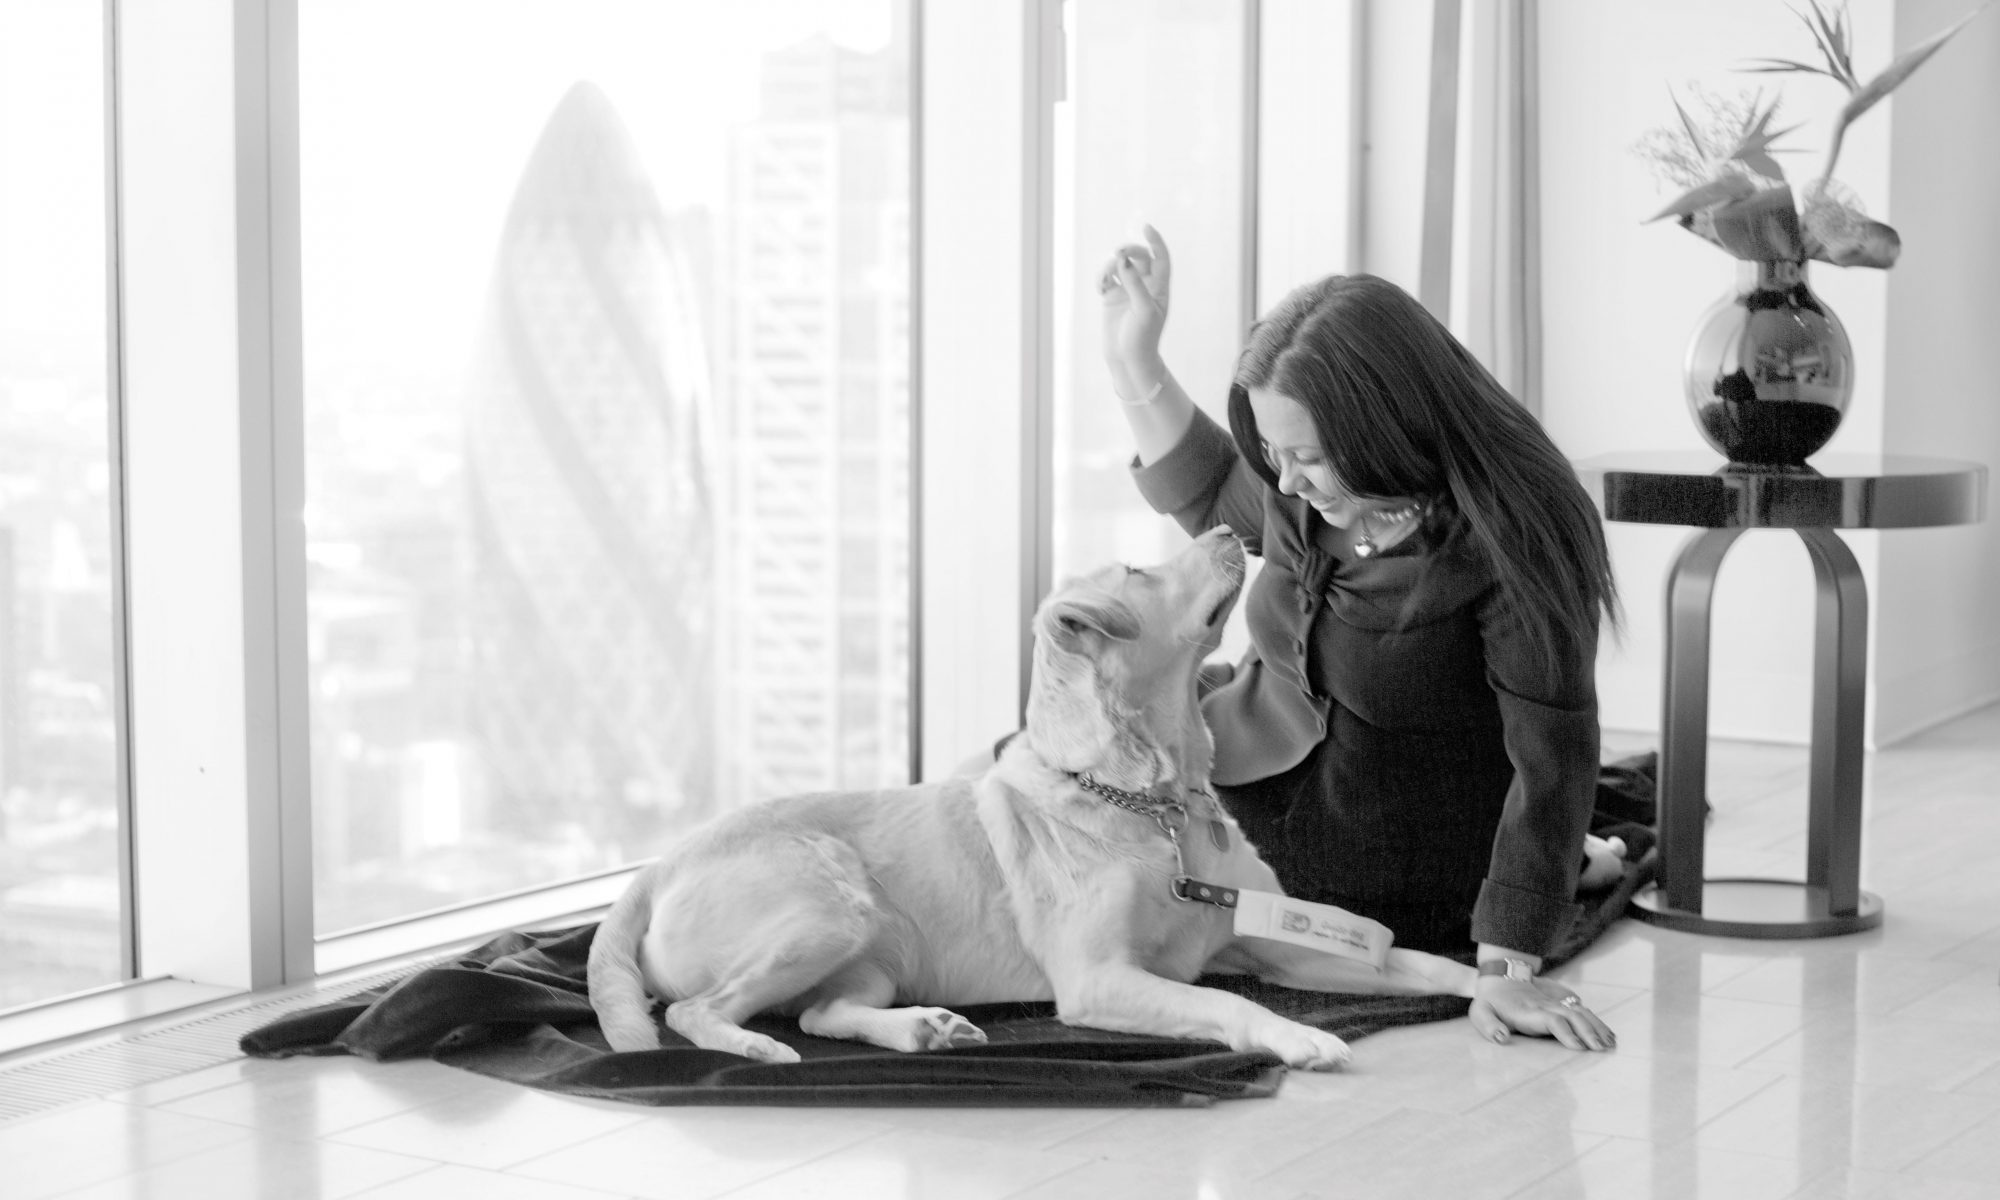 Katia Ramo and her guide dog Cora sit on the floor in front of a wide window with a view over the city of london